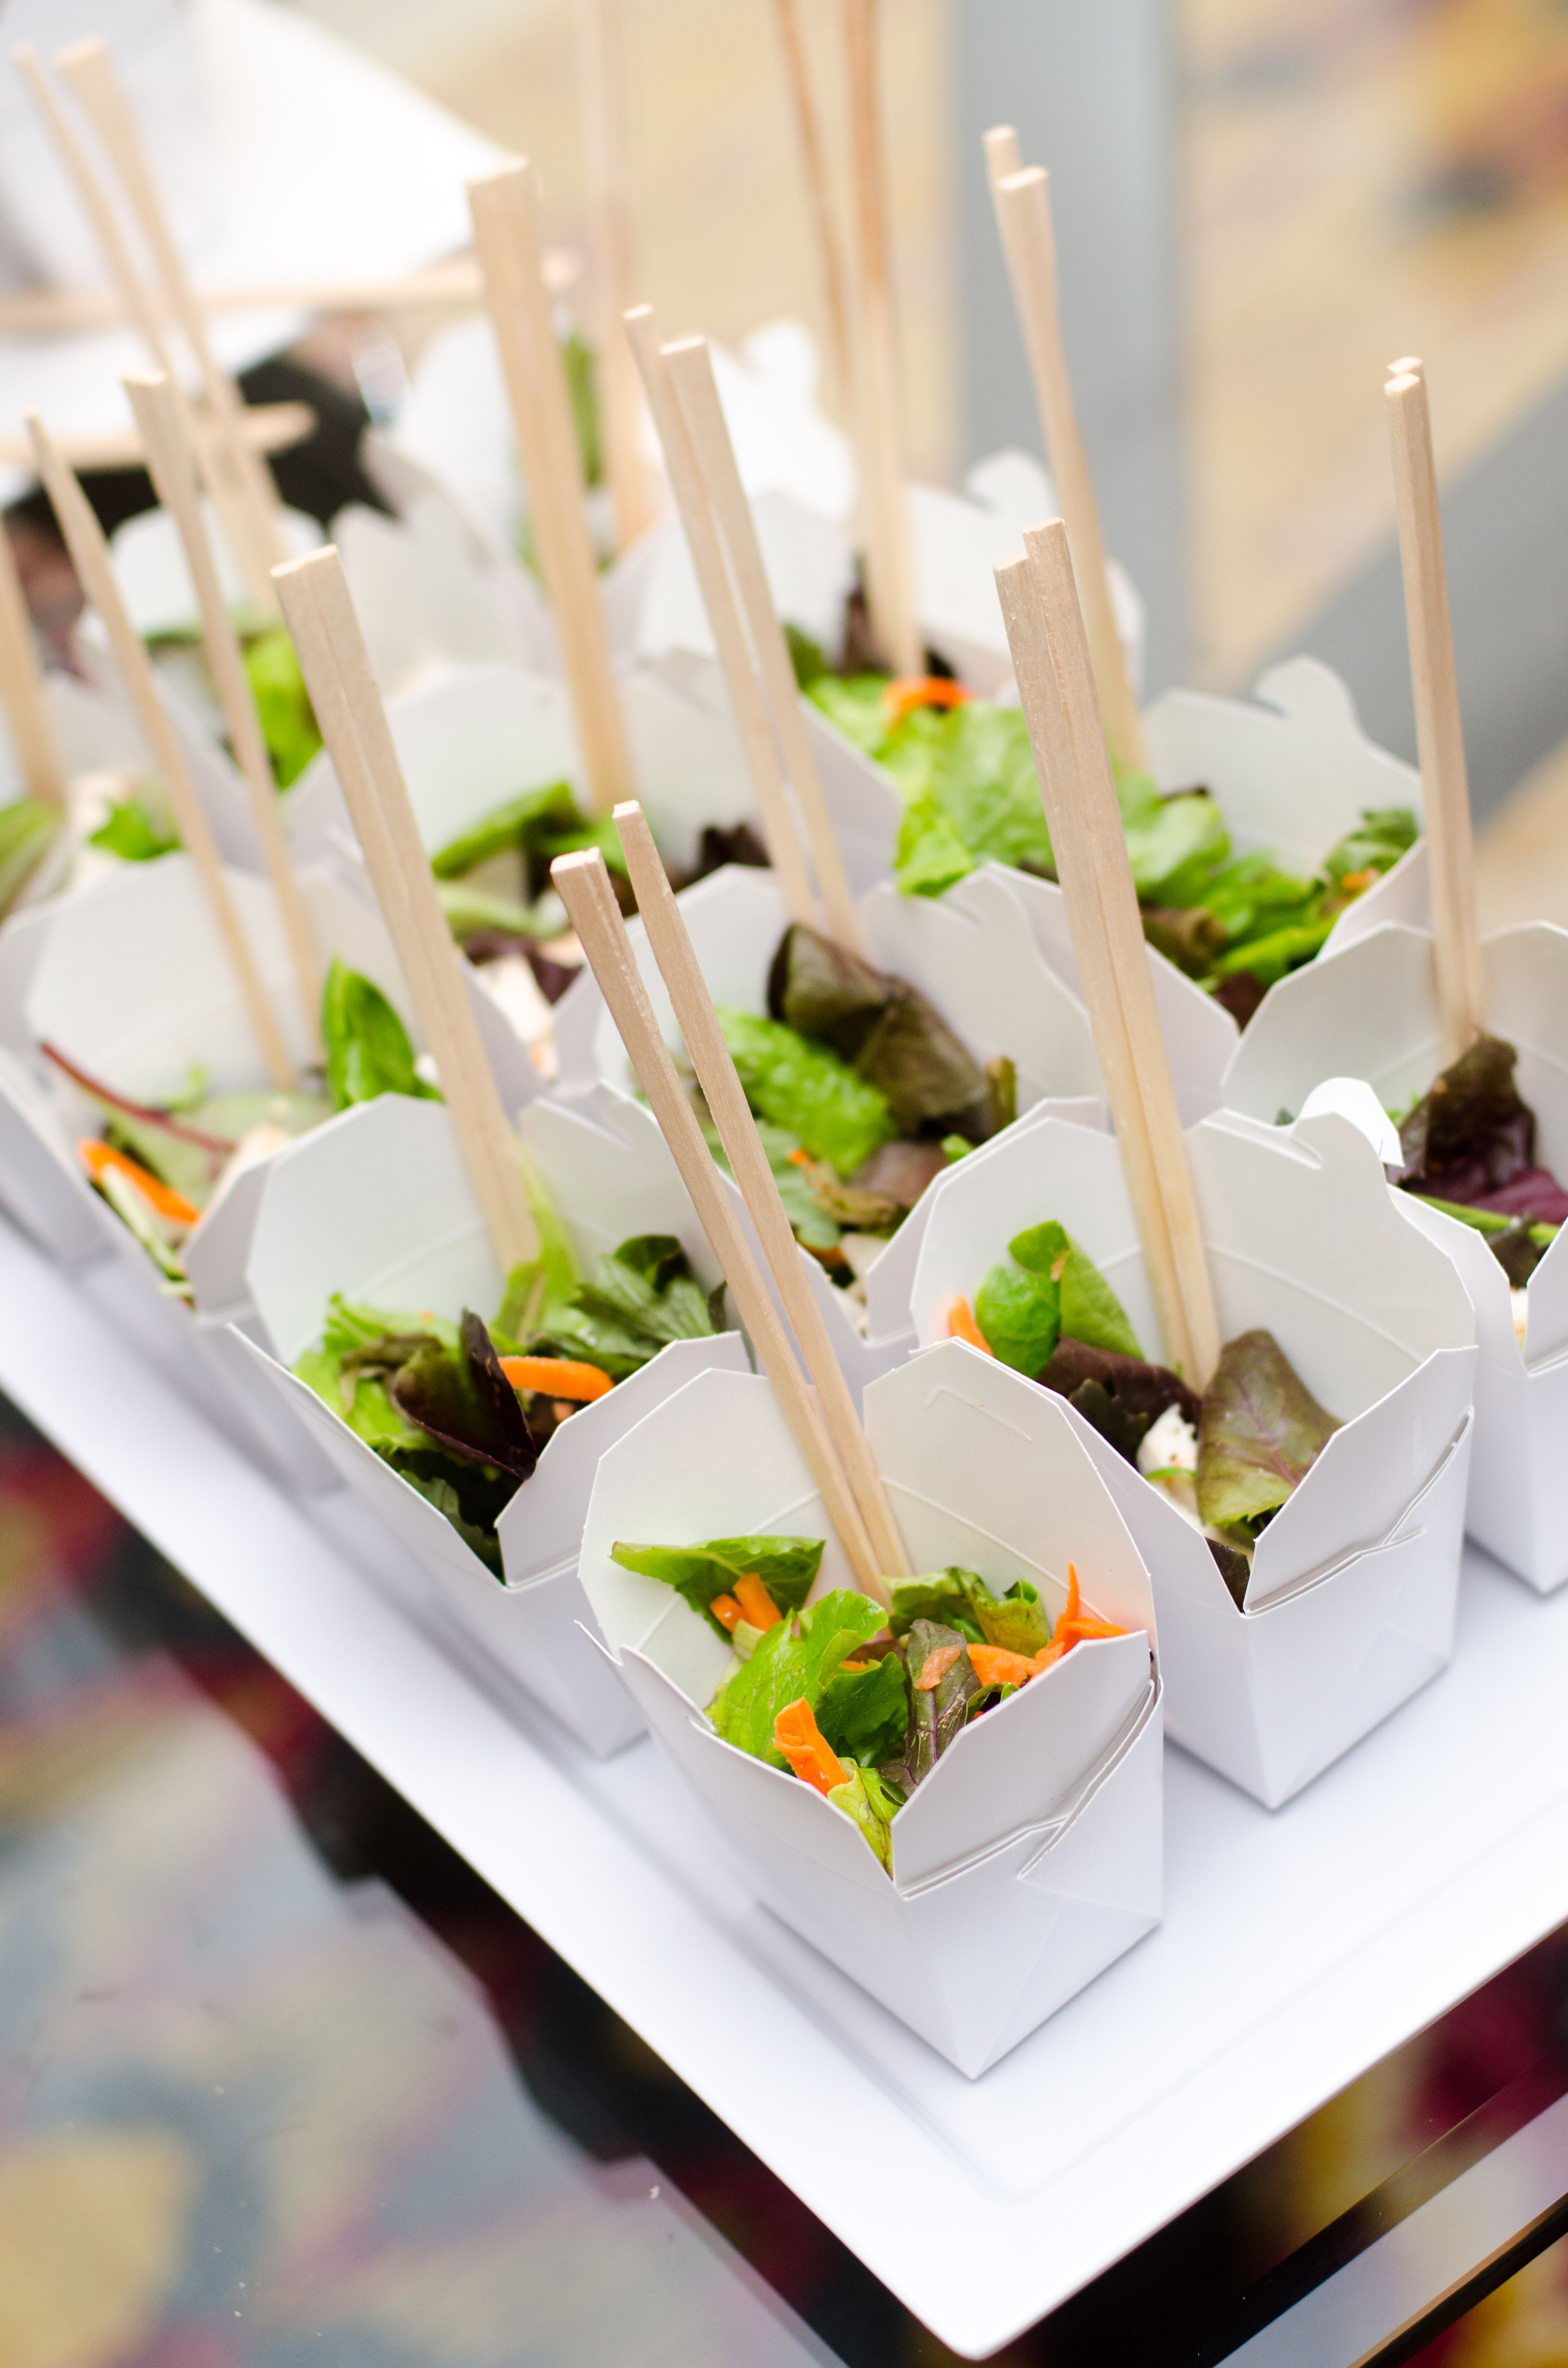 Creative Serving Idea Serve Salad Or Other Food In Take Out Boxes And Add Chopsticks